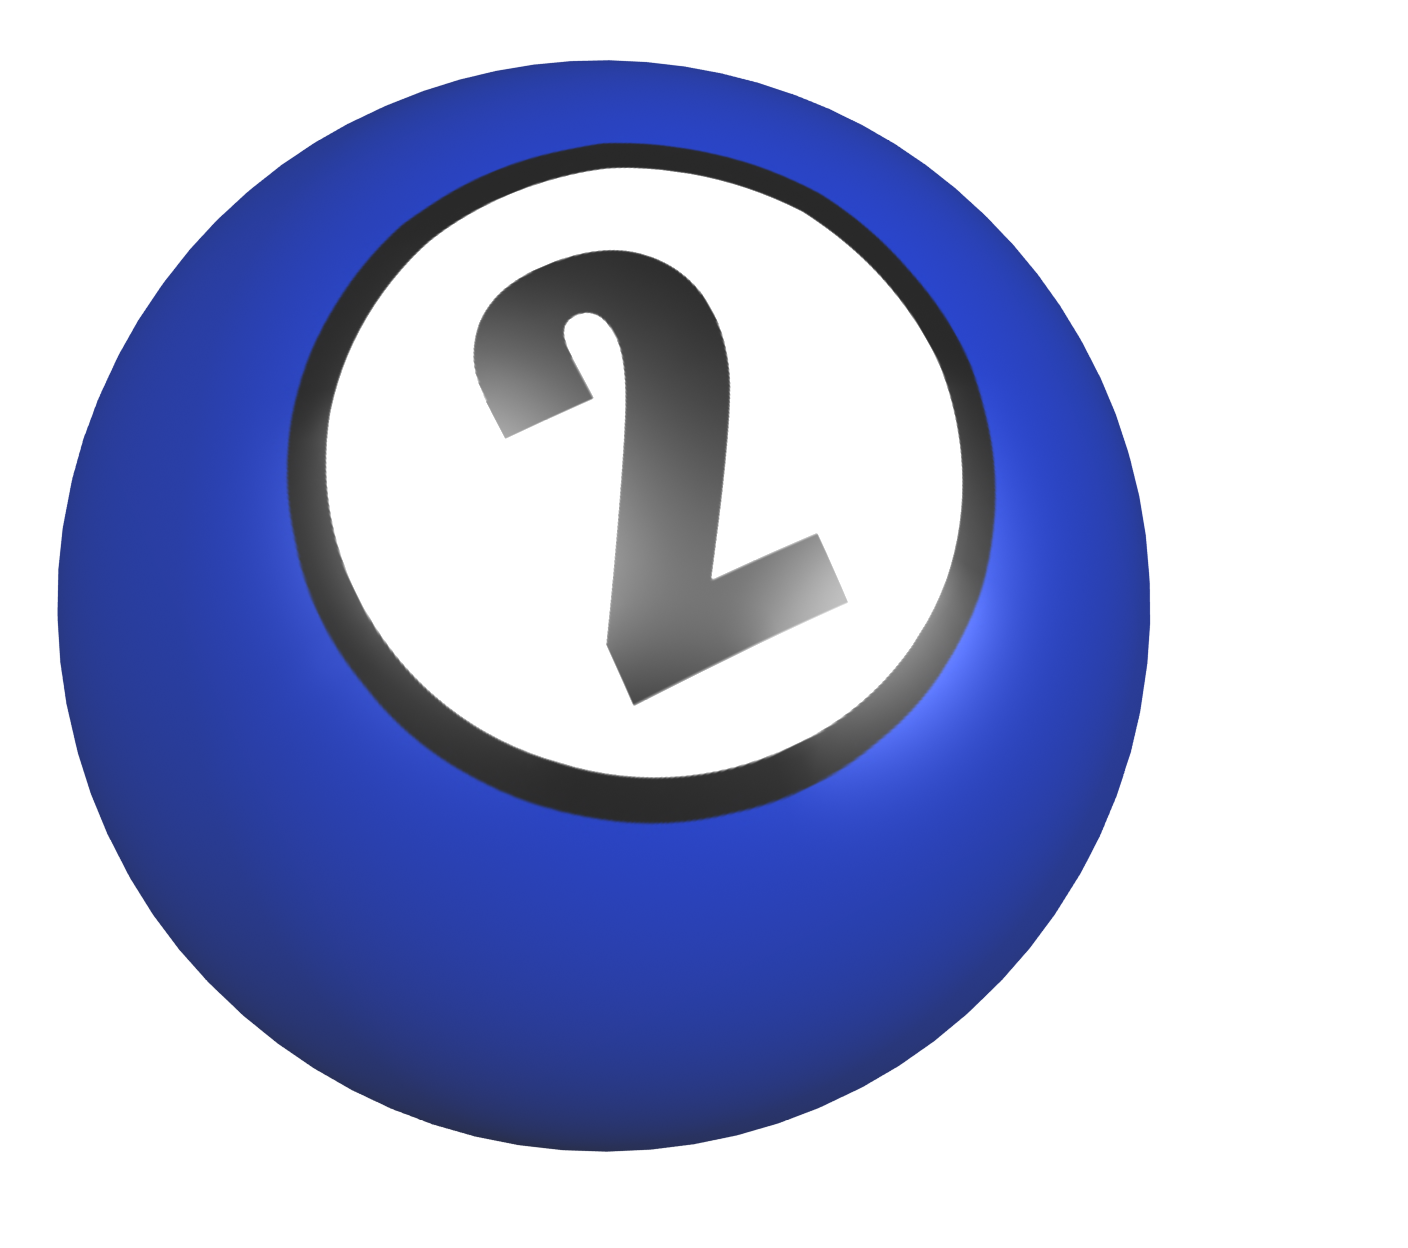 Number 2 Ball With Image From Clipart Free Clip Art Images